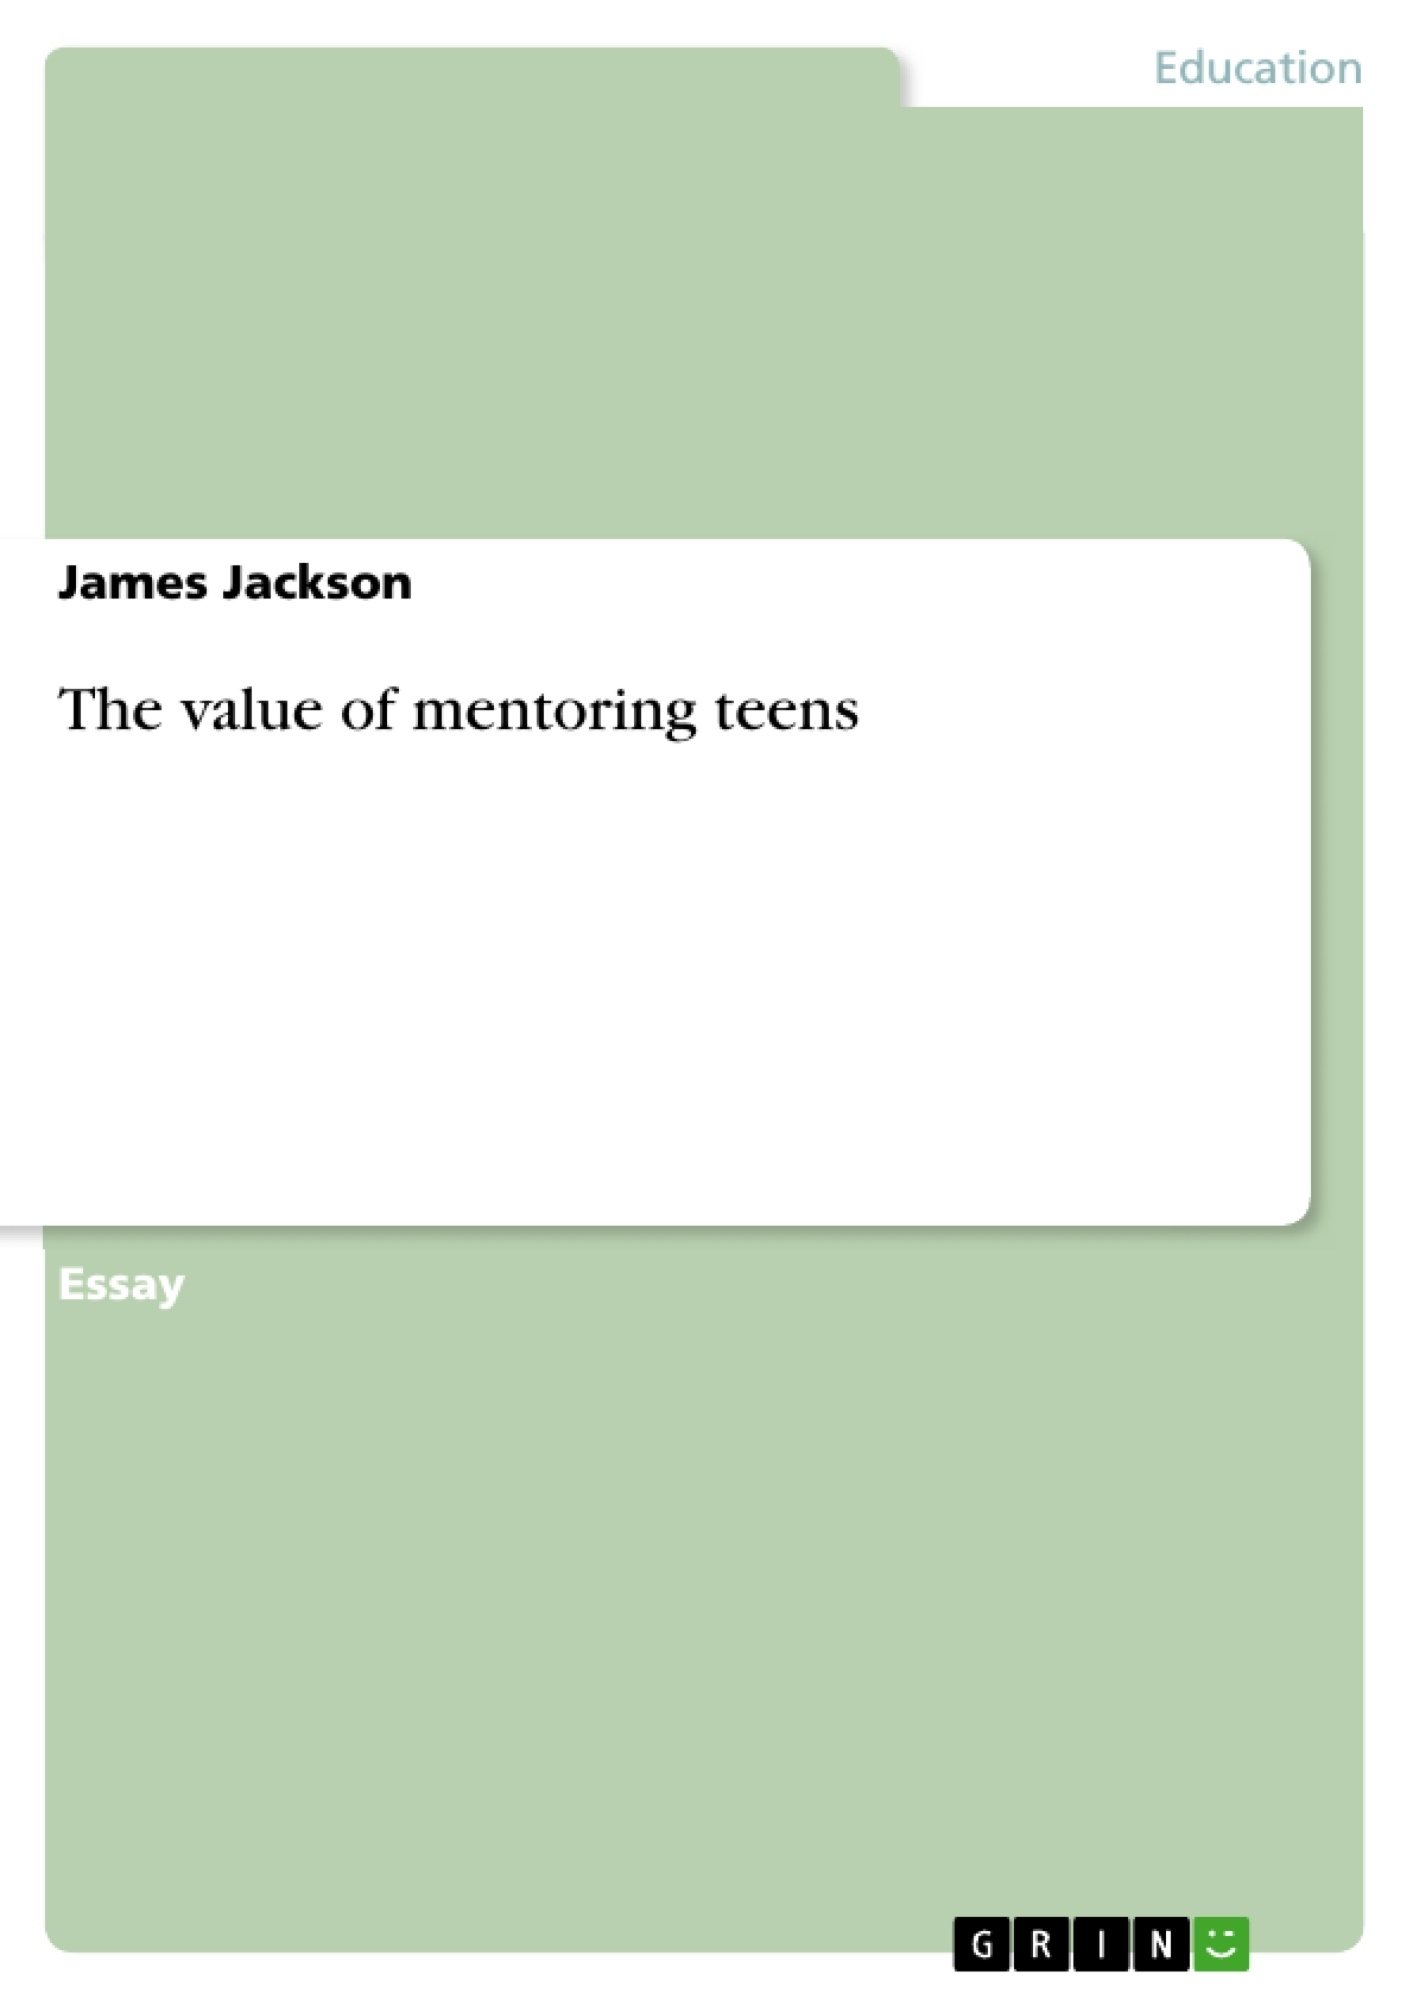 Title: The value of mentoring teens